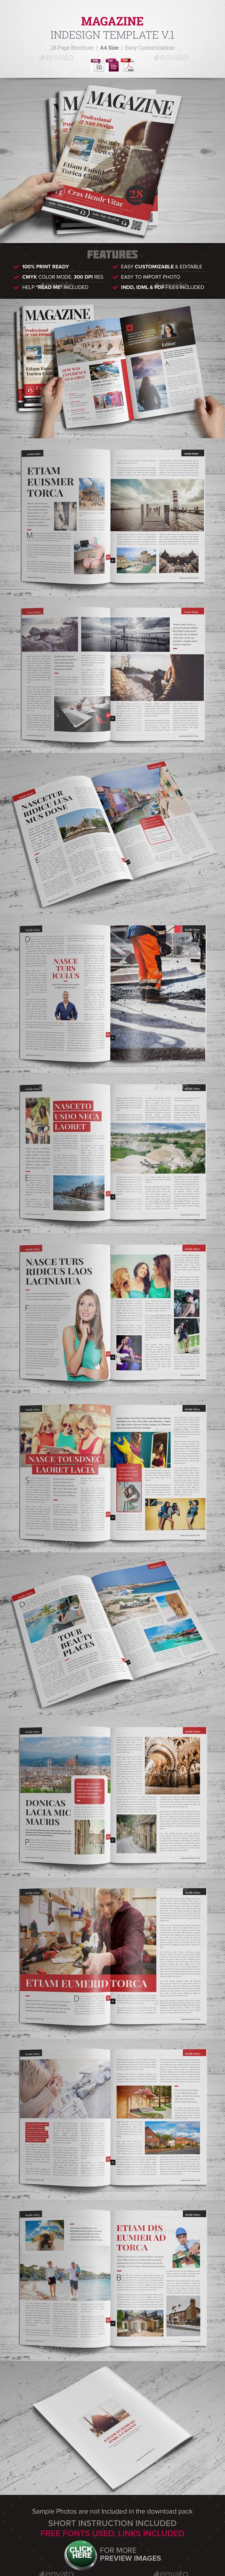 Magazine InDesign Template v1 | Pinterest | Diseño editorial ...